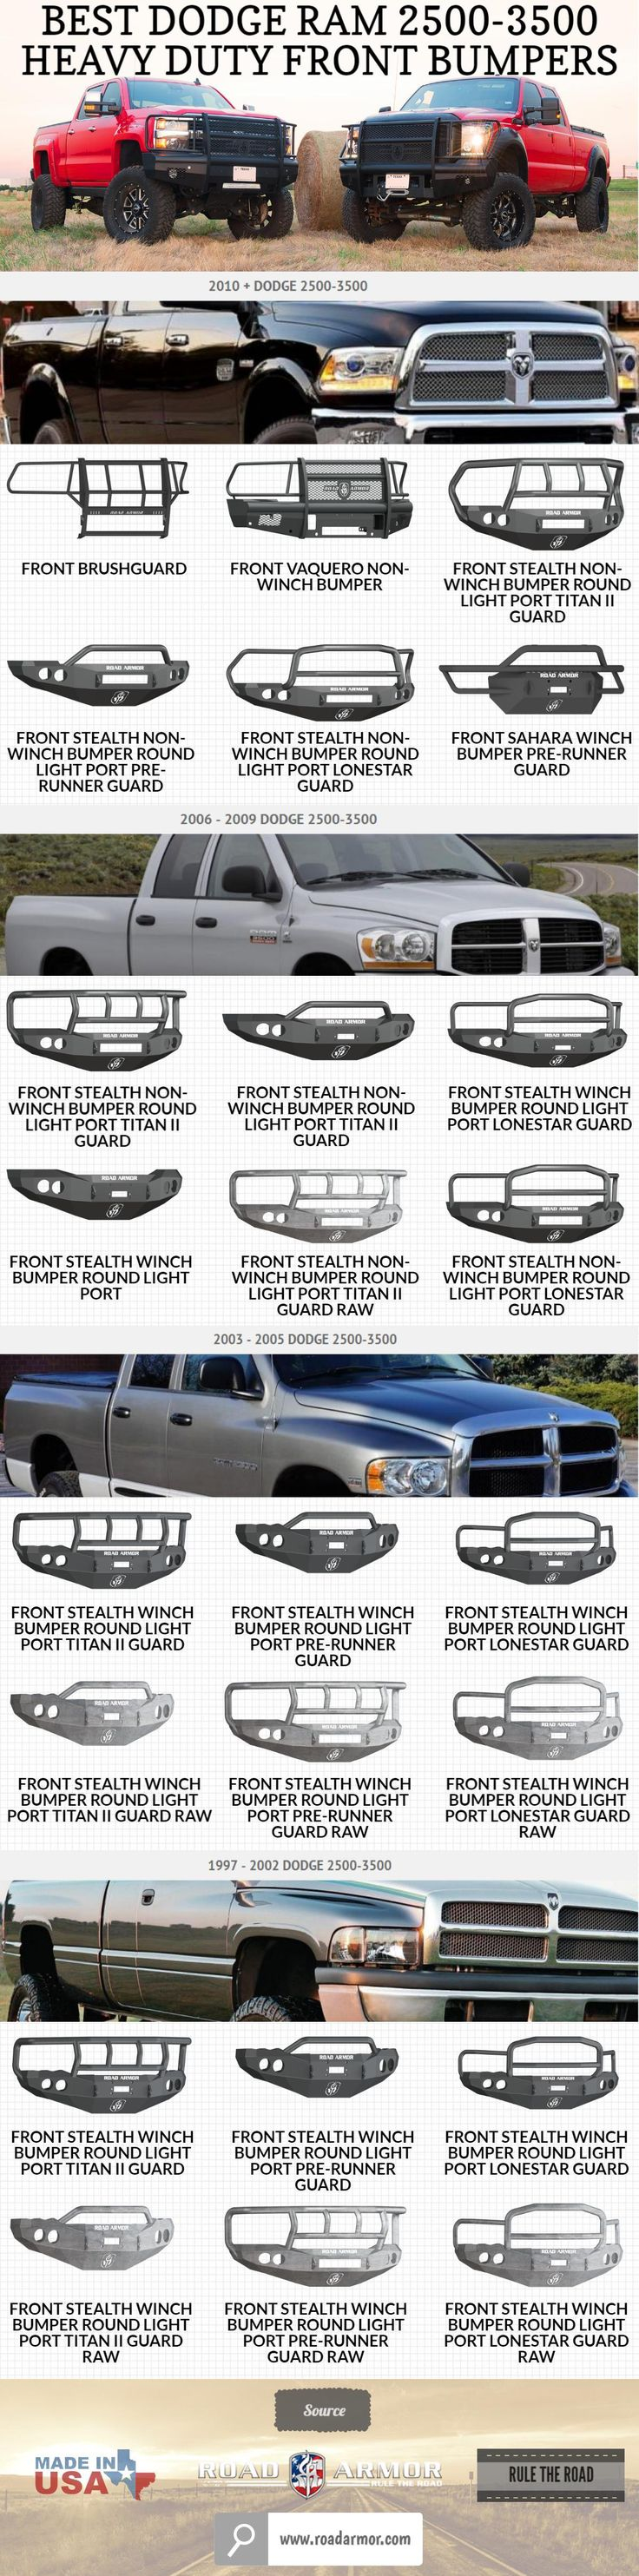 Best Dodge Ram 2500-3500 Heavy Duty Front Bumpers... For more details and shop online at: https://www.roadarmor.com/dodge-2500-3500-bumper